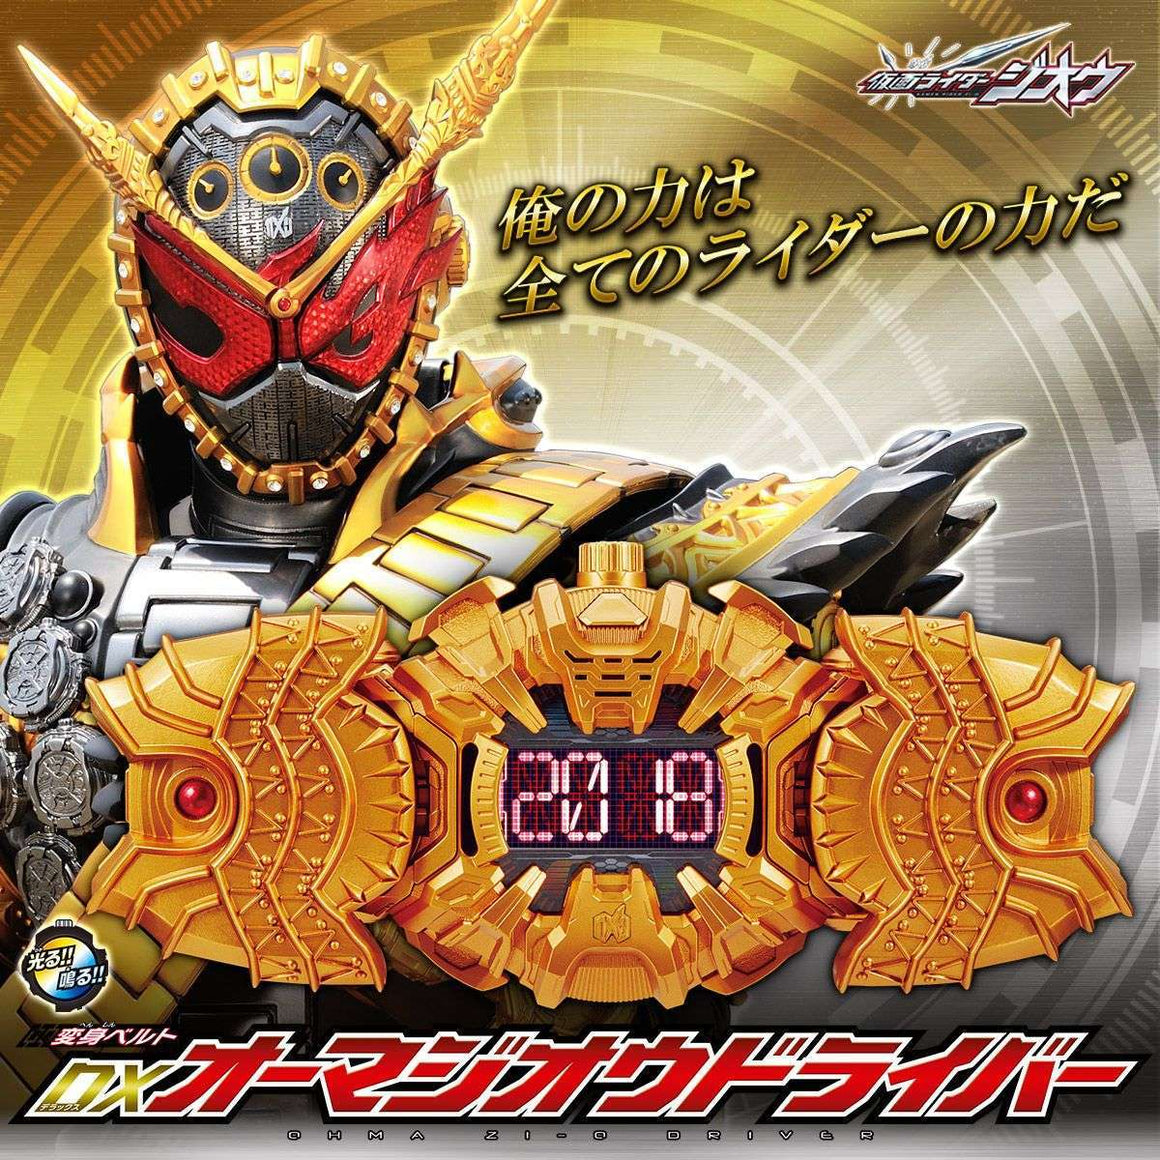 CSTOYS INTERNATIONAL:[CLOSED Jan. 2020] Premium Bandai Exclusive - Kamen Rider Zi-O DX Ohma Zi-O Driver  (Aug. 25th - Sep. 8th)